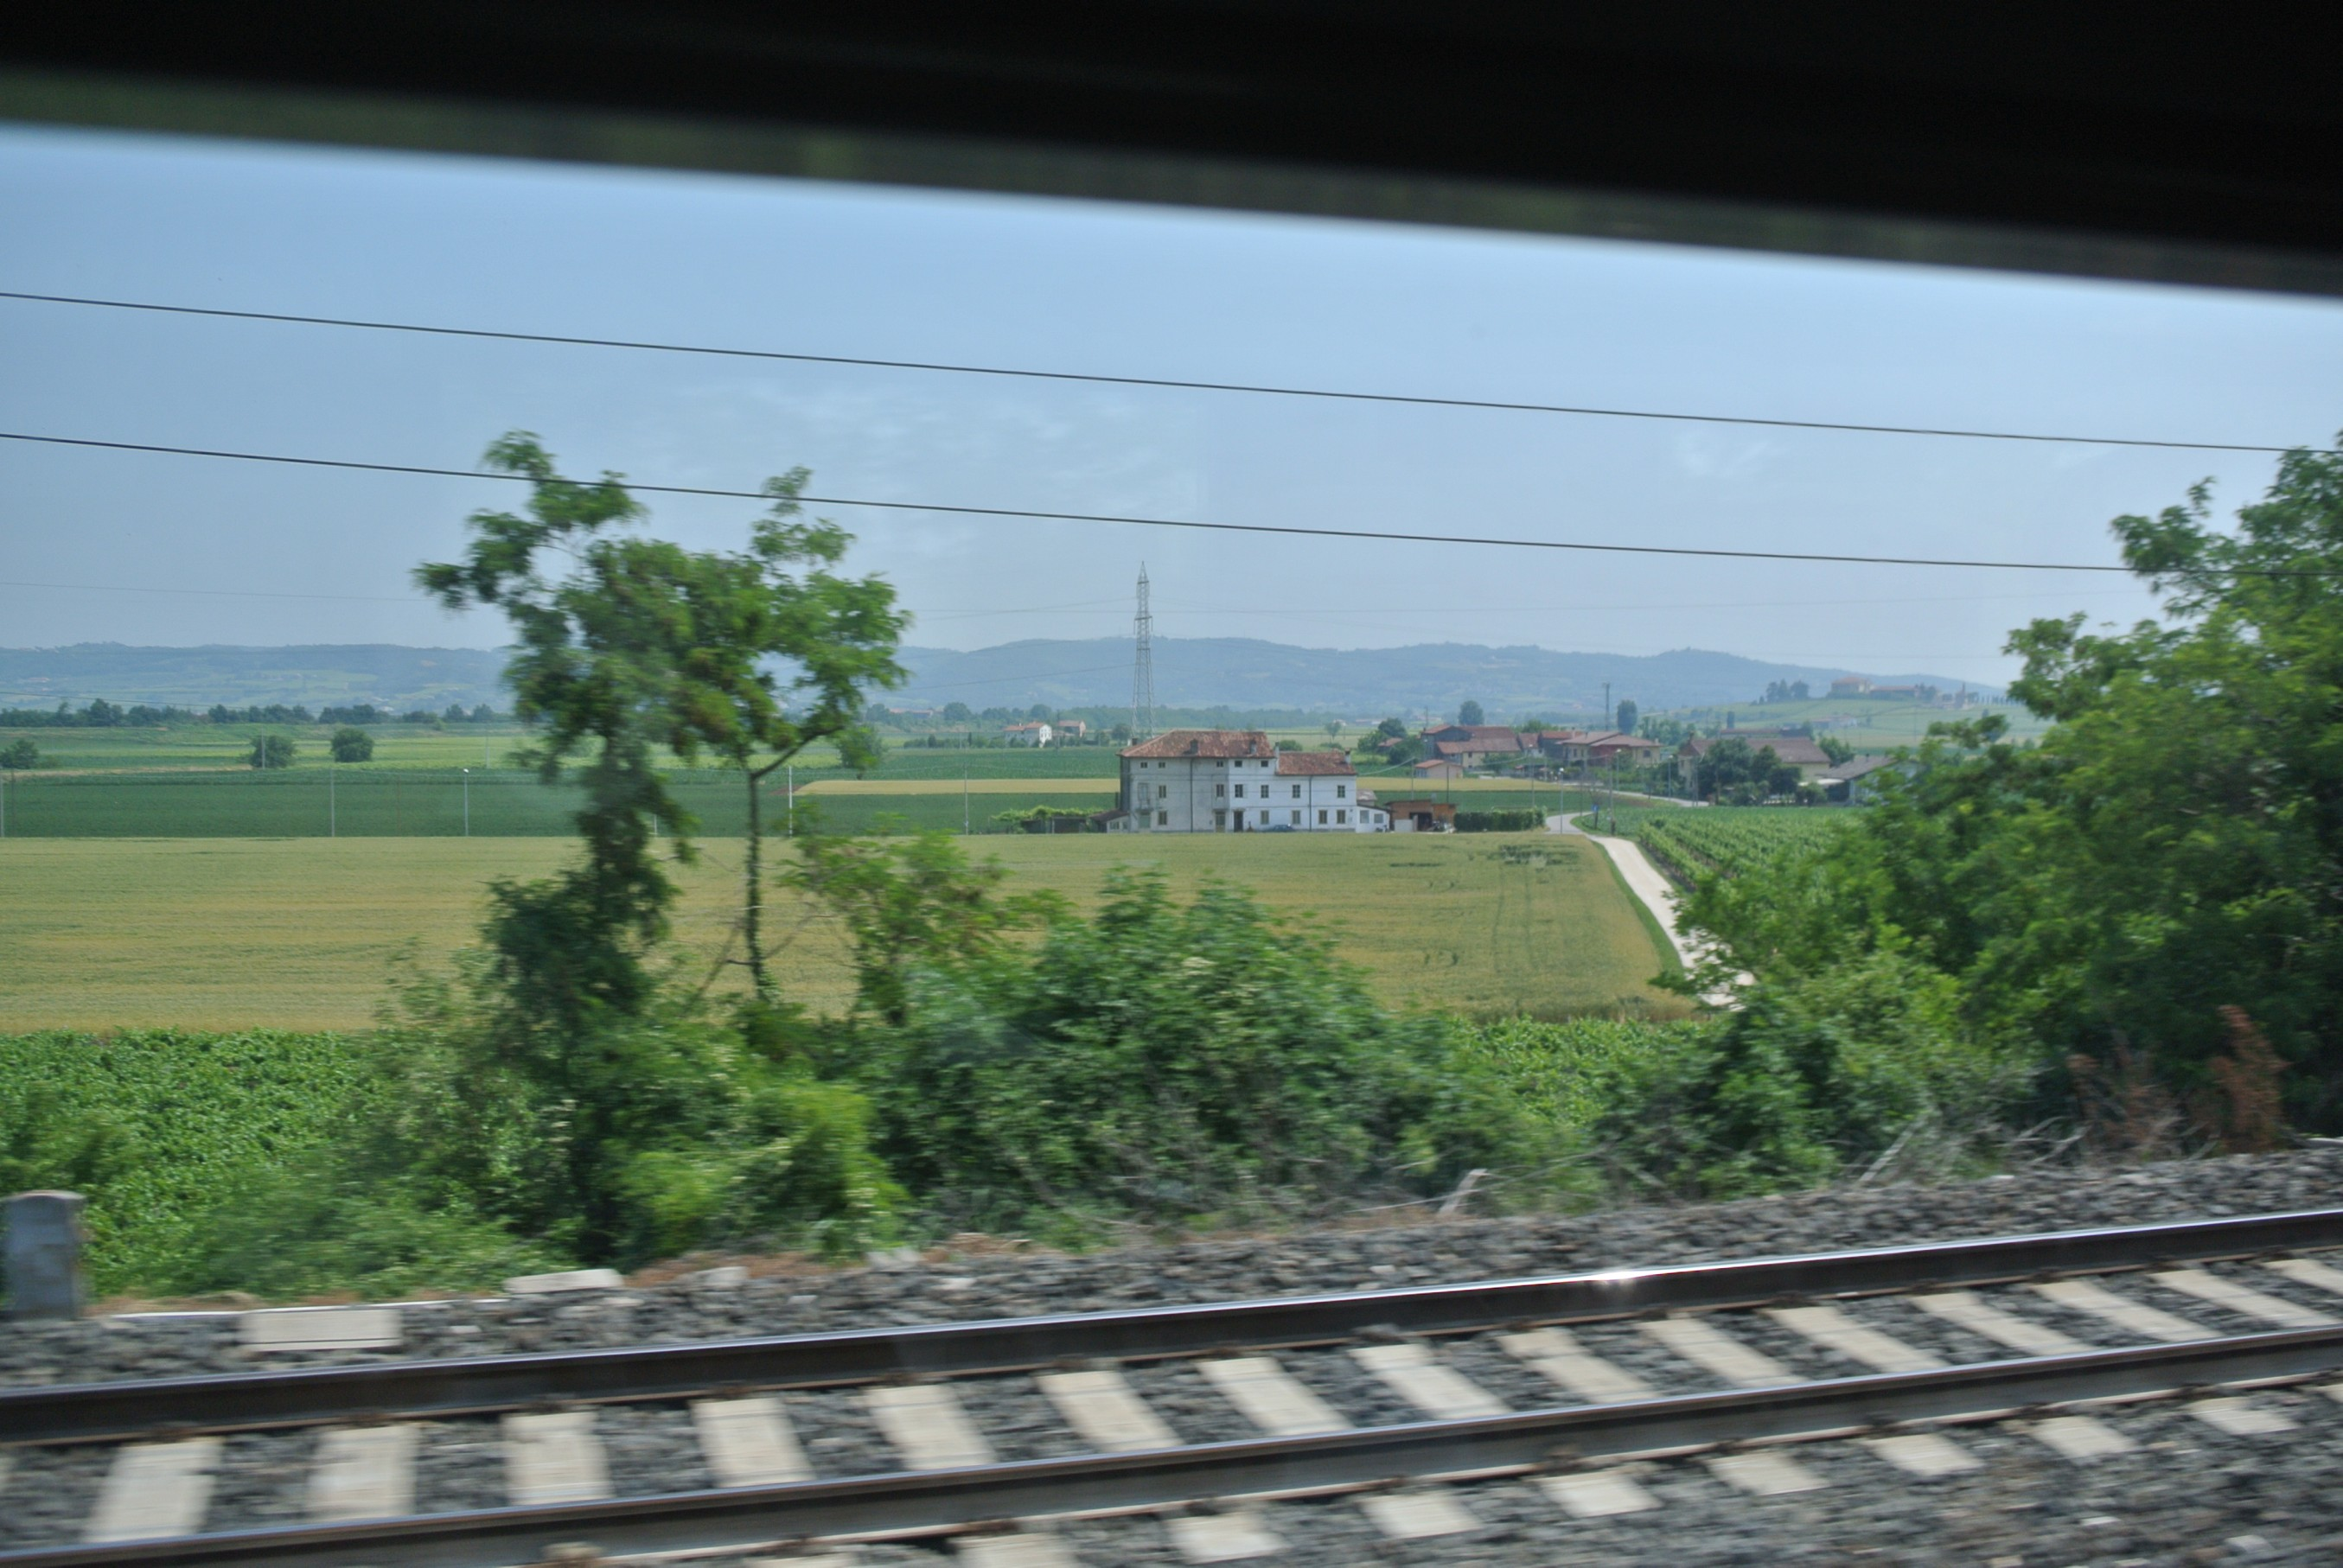 A view from the train.